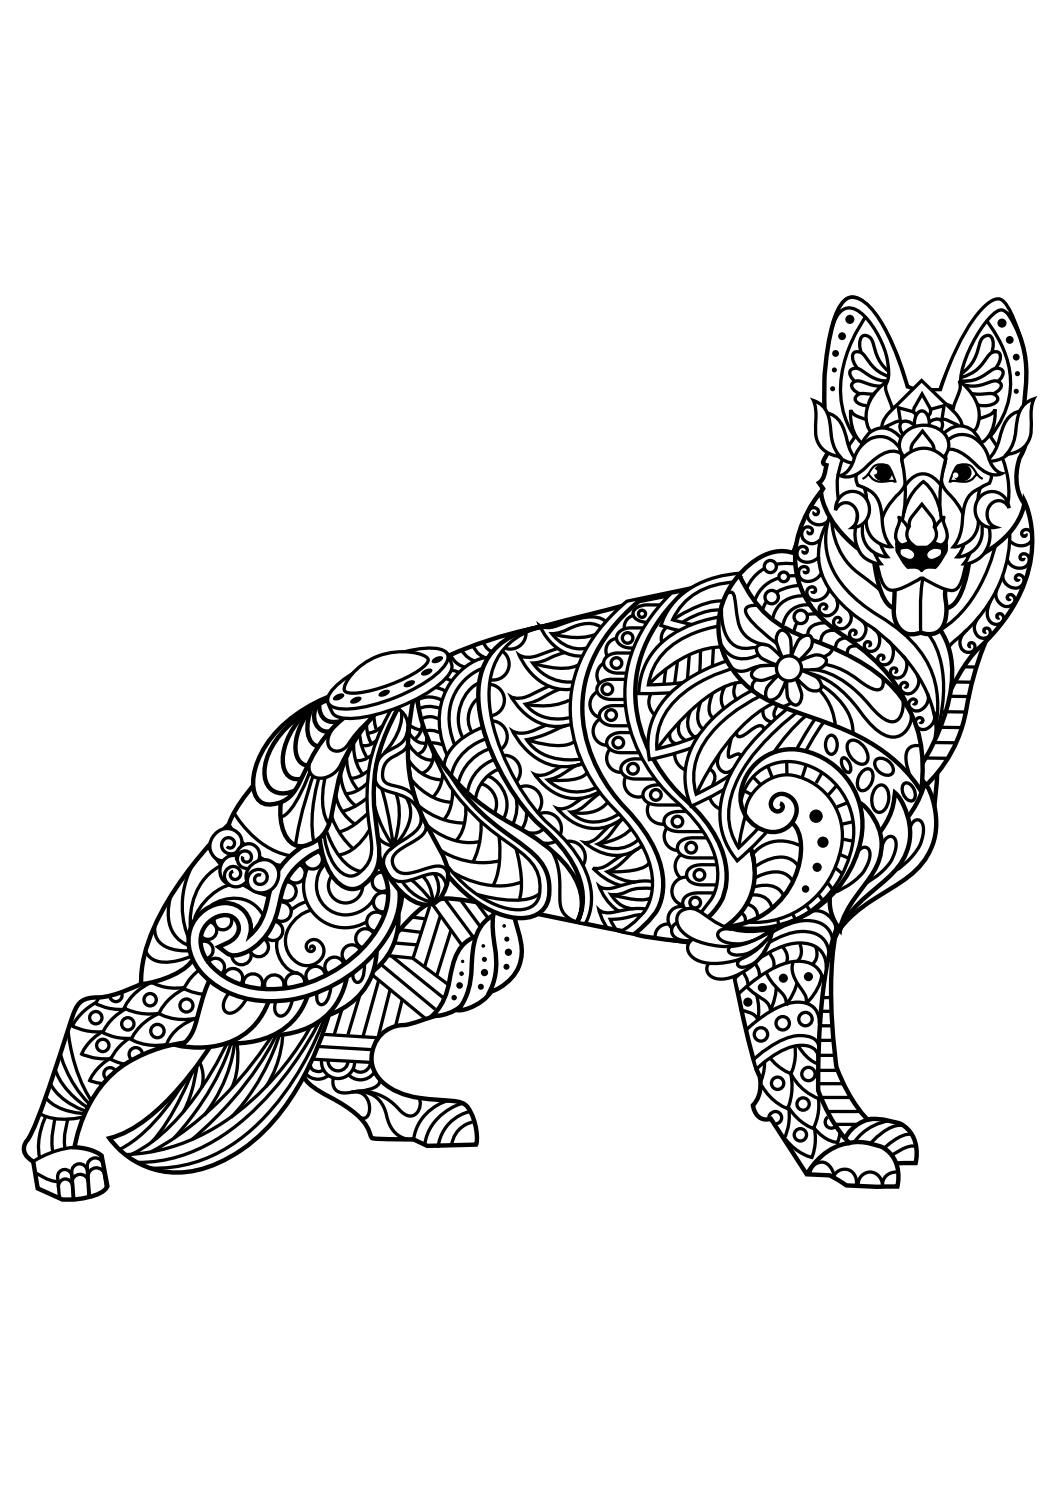 animal coloring pages pdf coloring animals free adult coloring pages dog coloring page. Black Bedroom Furniture Sets. Home Design Ideas